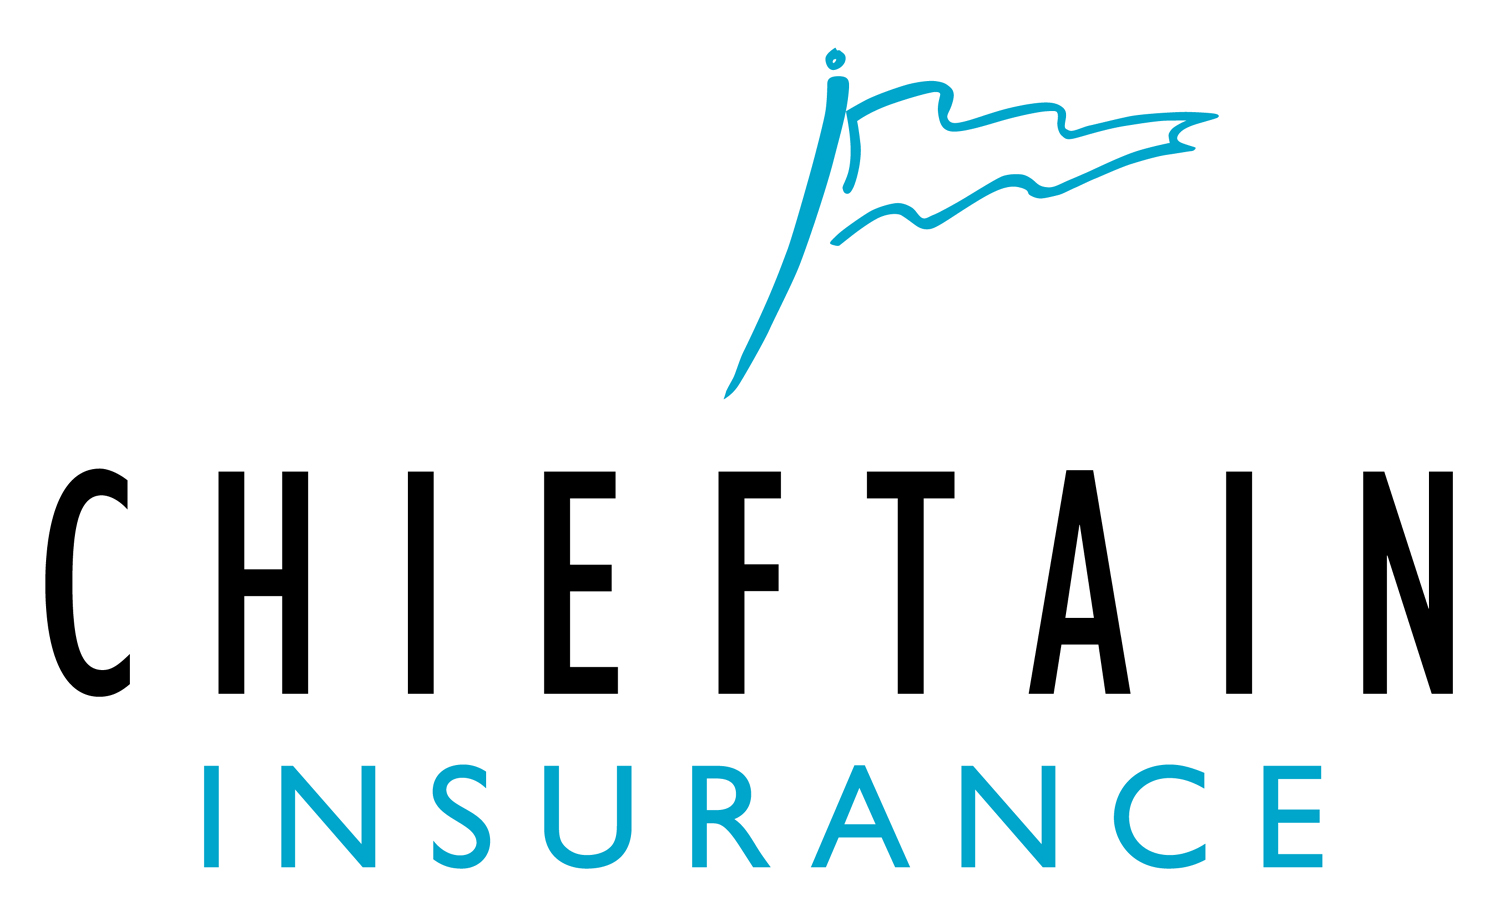 Chieftain insurance logo - high res